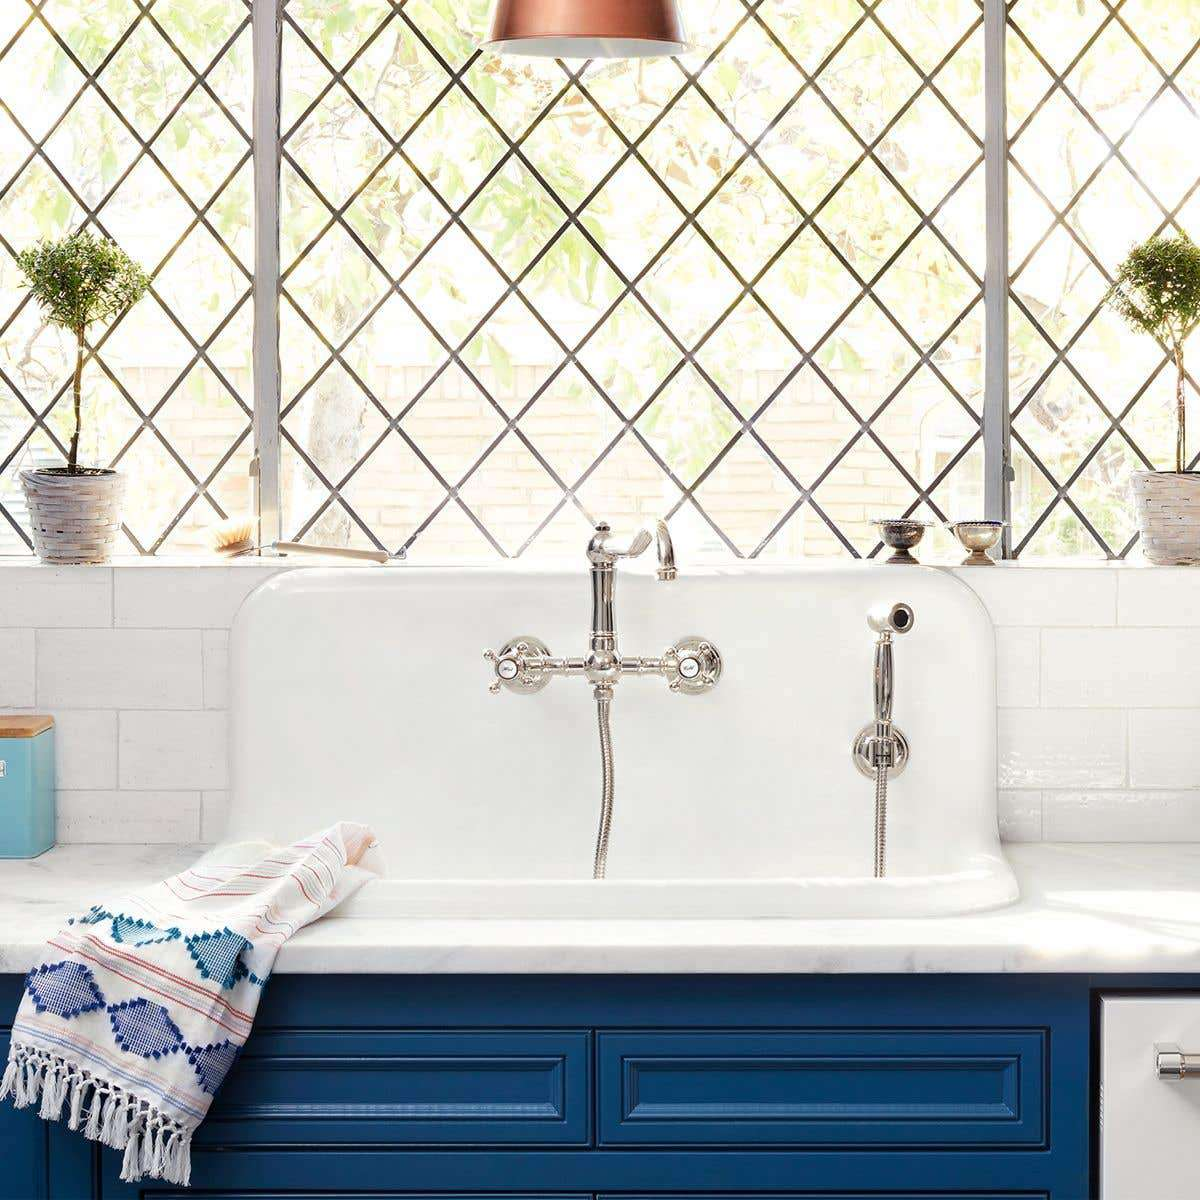 A farmhouse kitchen sink, currently for sale at Vintage Tub & Bath